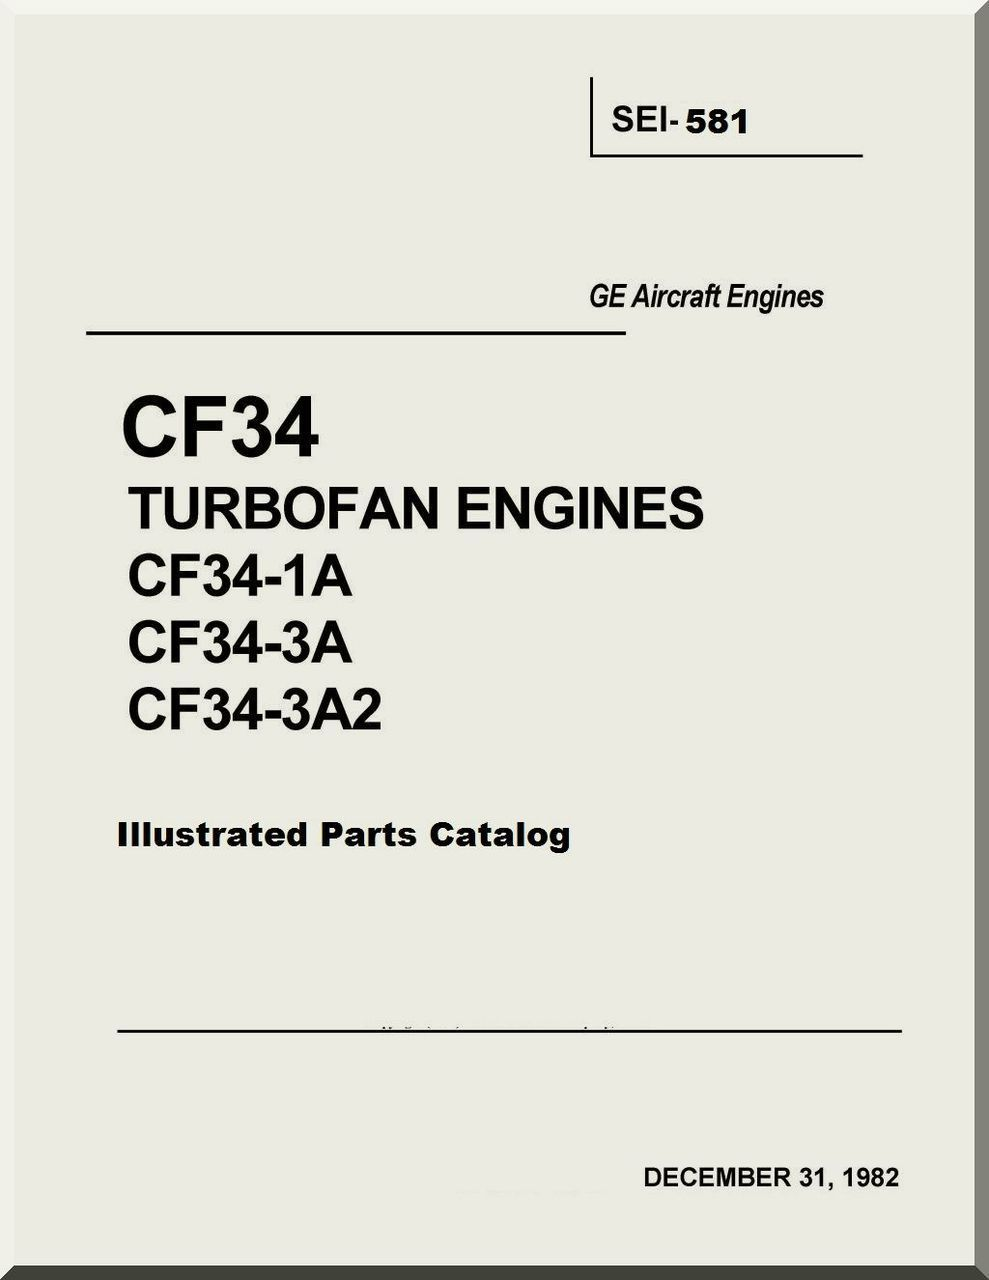 General Electric Cf34 Turbofan Engines 1a 3a 3a2 Engine Diagram Illustrated Parts Catalog Manual Sei 581 Aircraft Reports Manuals